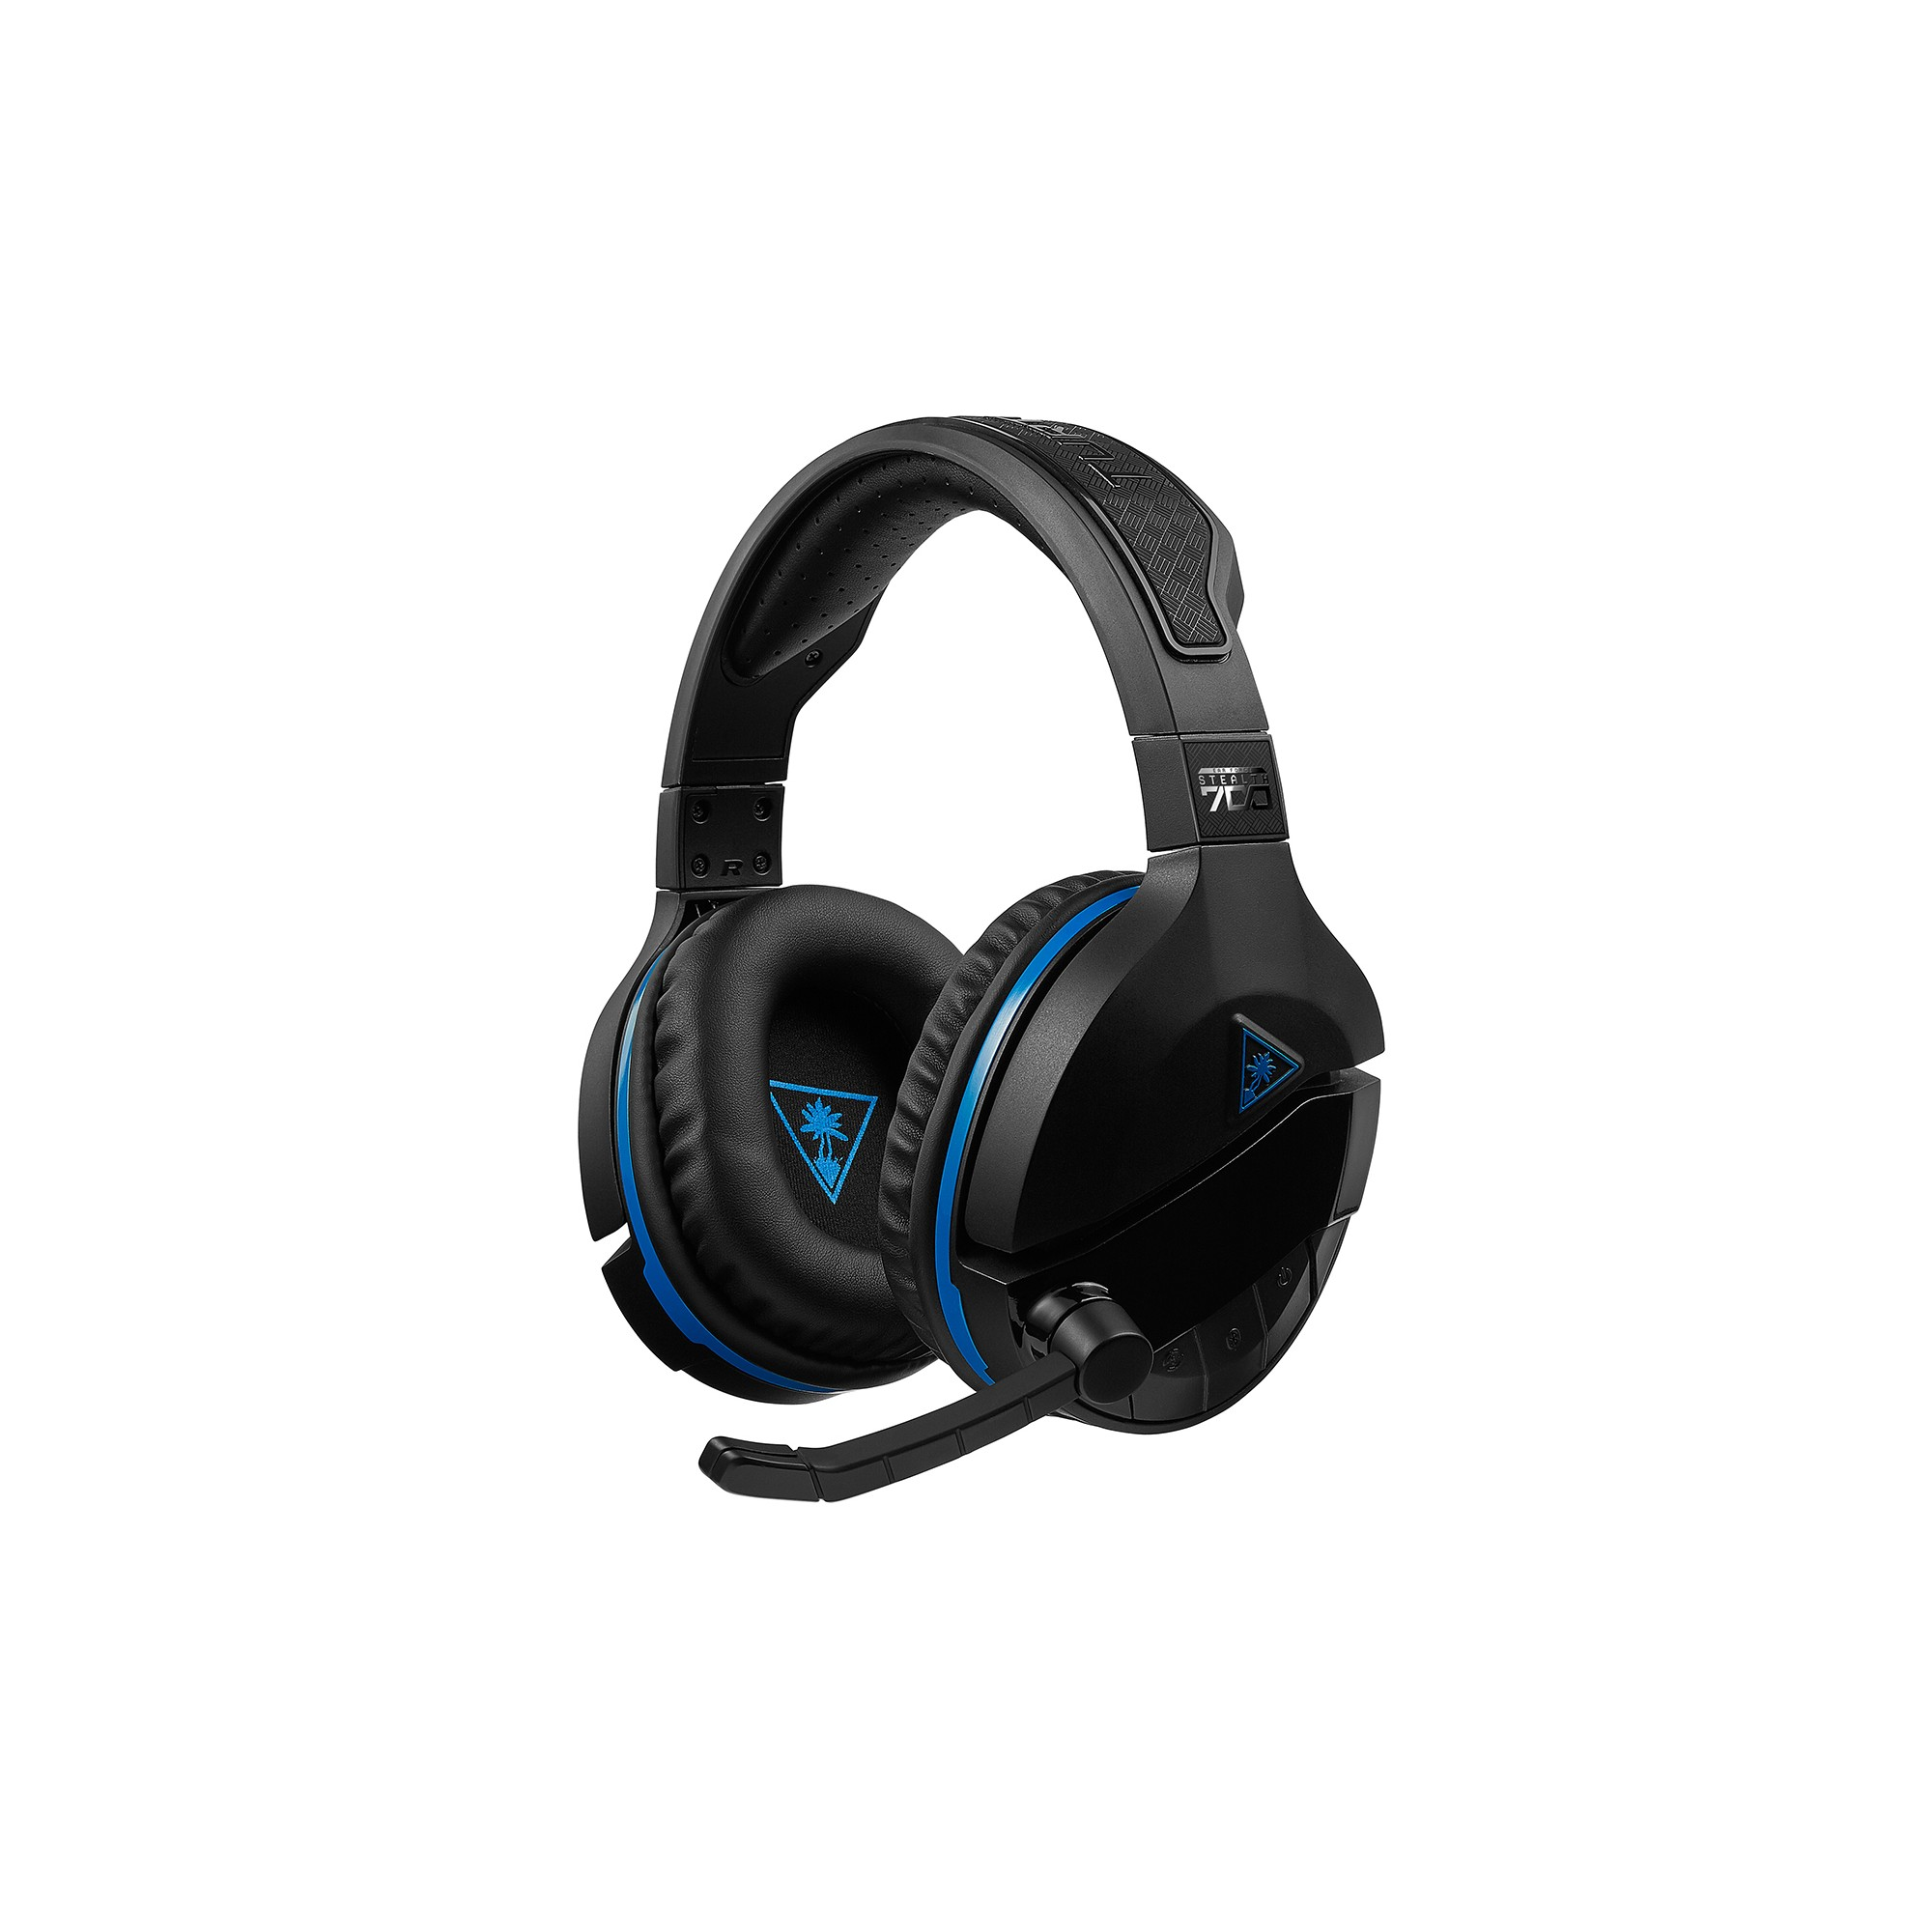 Turtle Beach Stealth 700 Premium Wireless Surround Sound Gaming Headset For Playstation 4 Pro And Playstation 4 Black Wireless Surround Sound Gaming Headset Headset